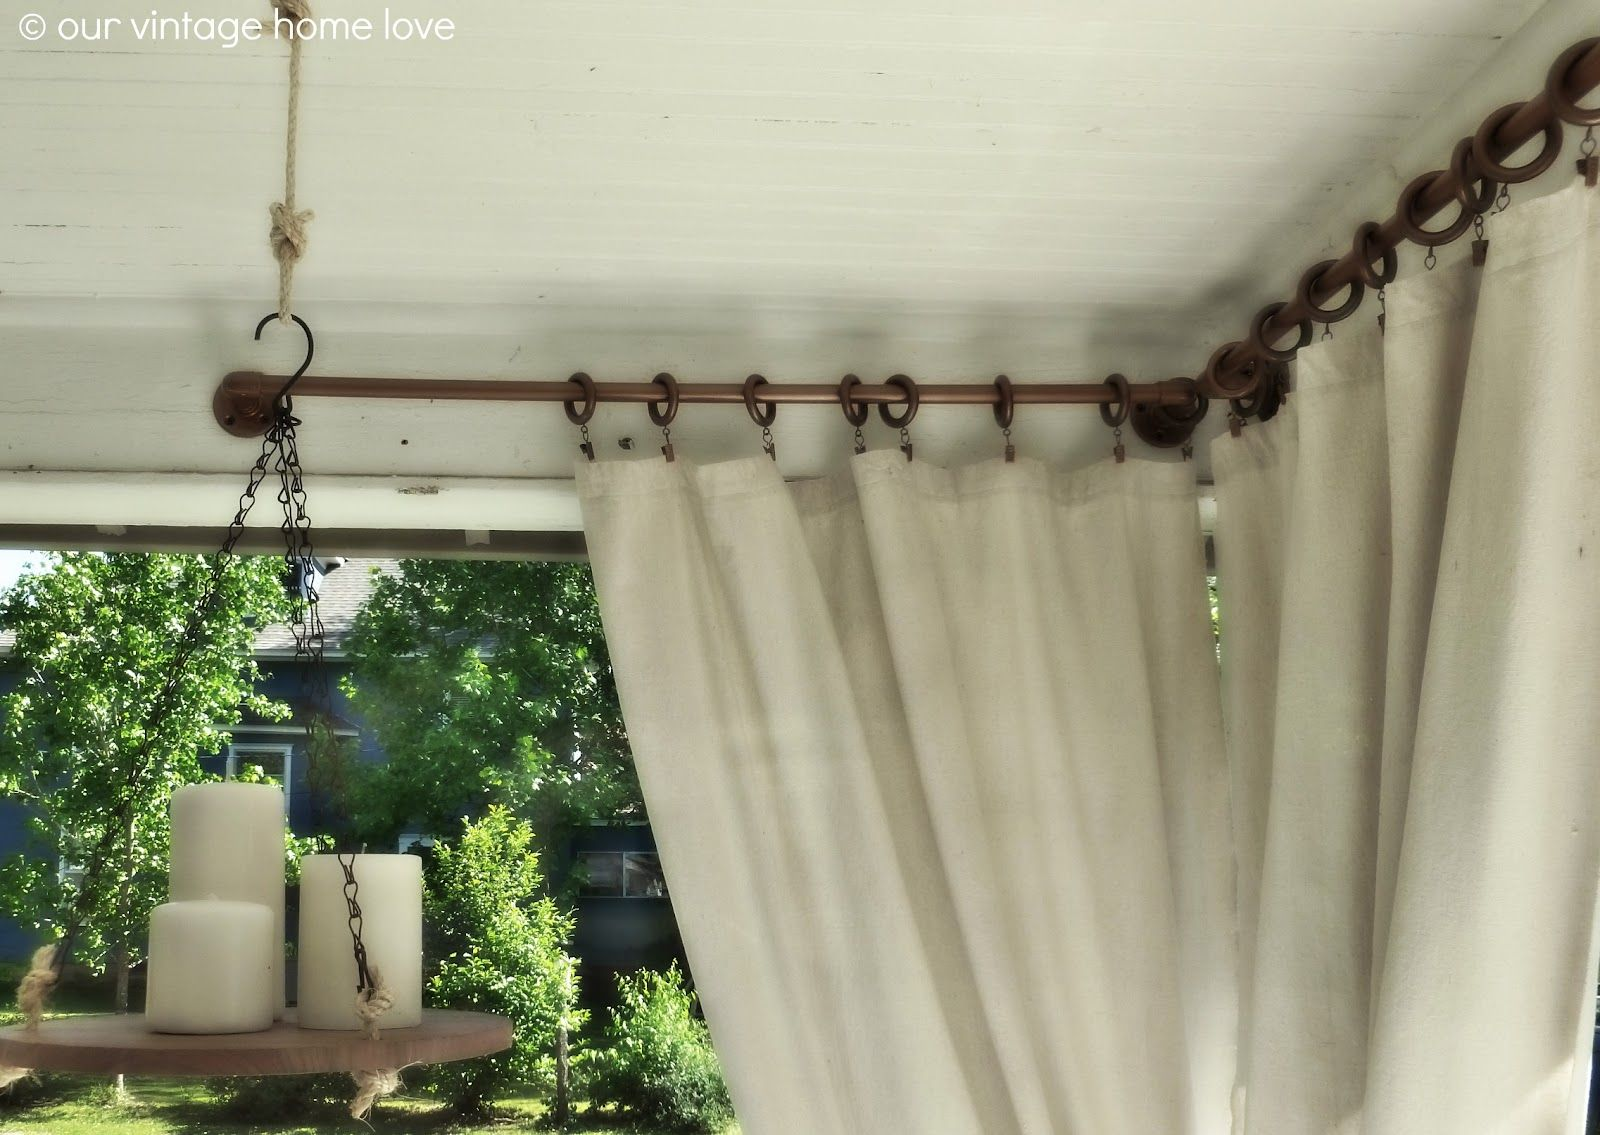 Outdoor curtain ideas used pvc pipe and spray painted it with the